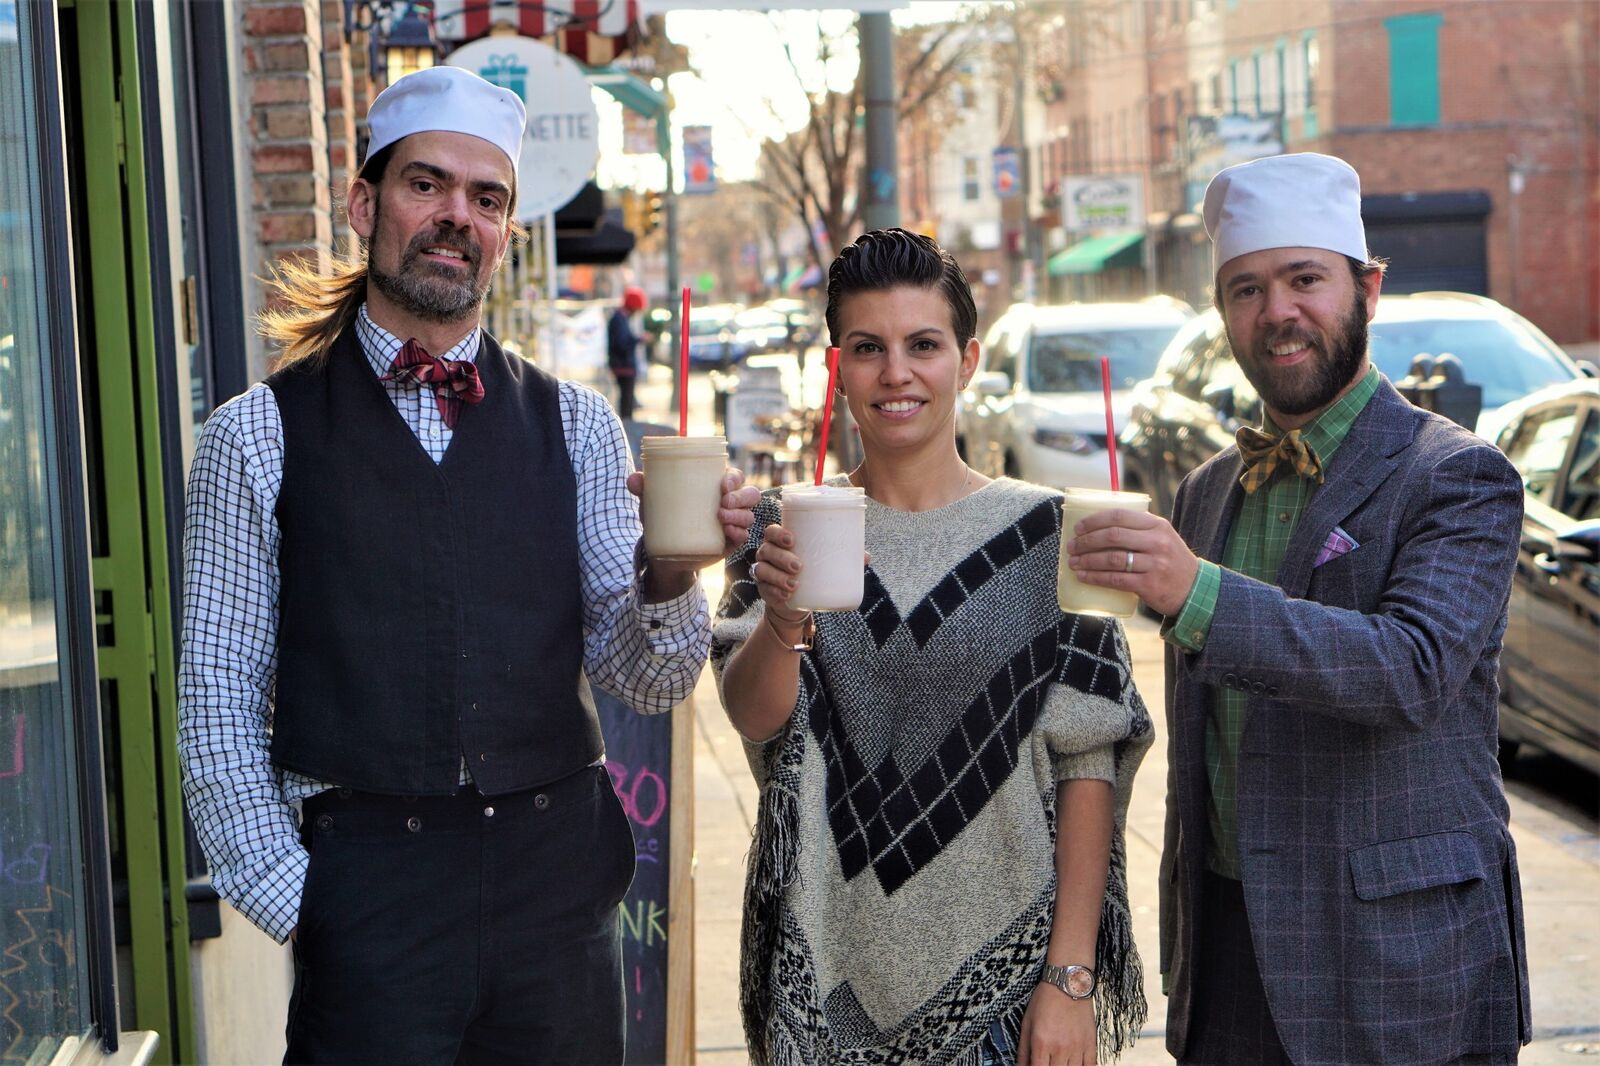 P'unk Burger and Franklin Fountain are collaborating on milkshakes.